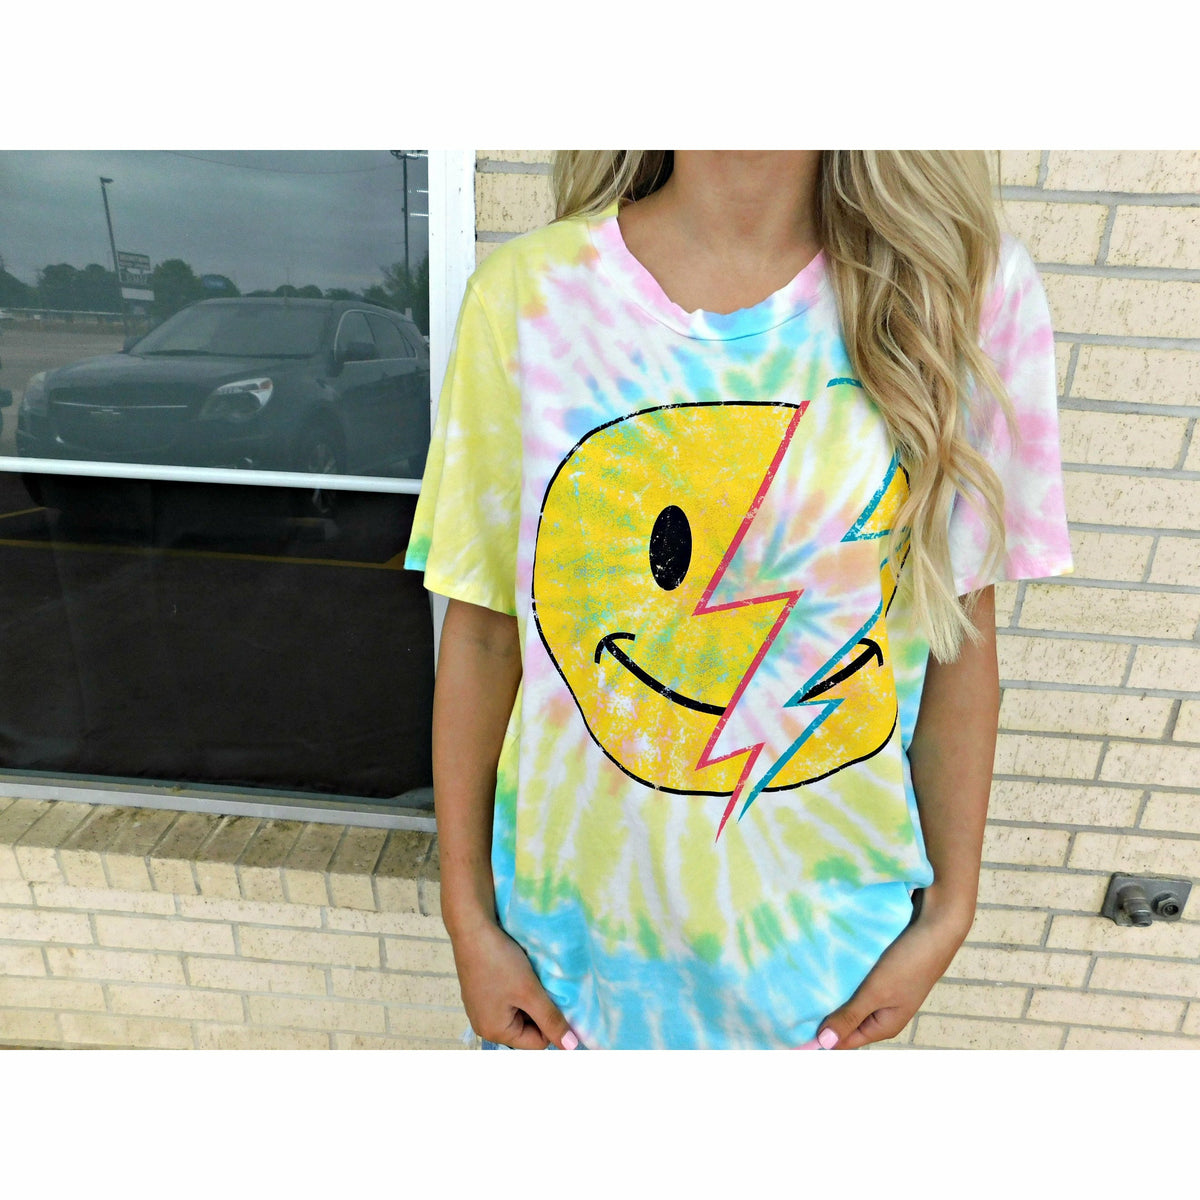 Smiley Tie Dye (plus)